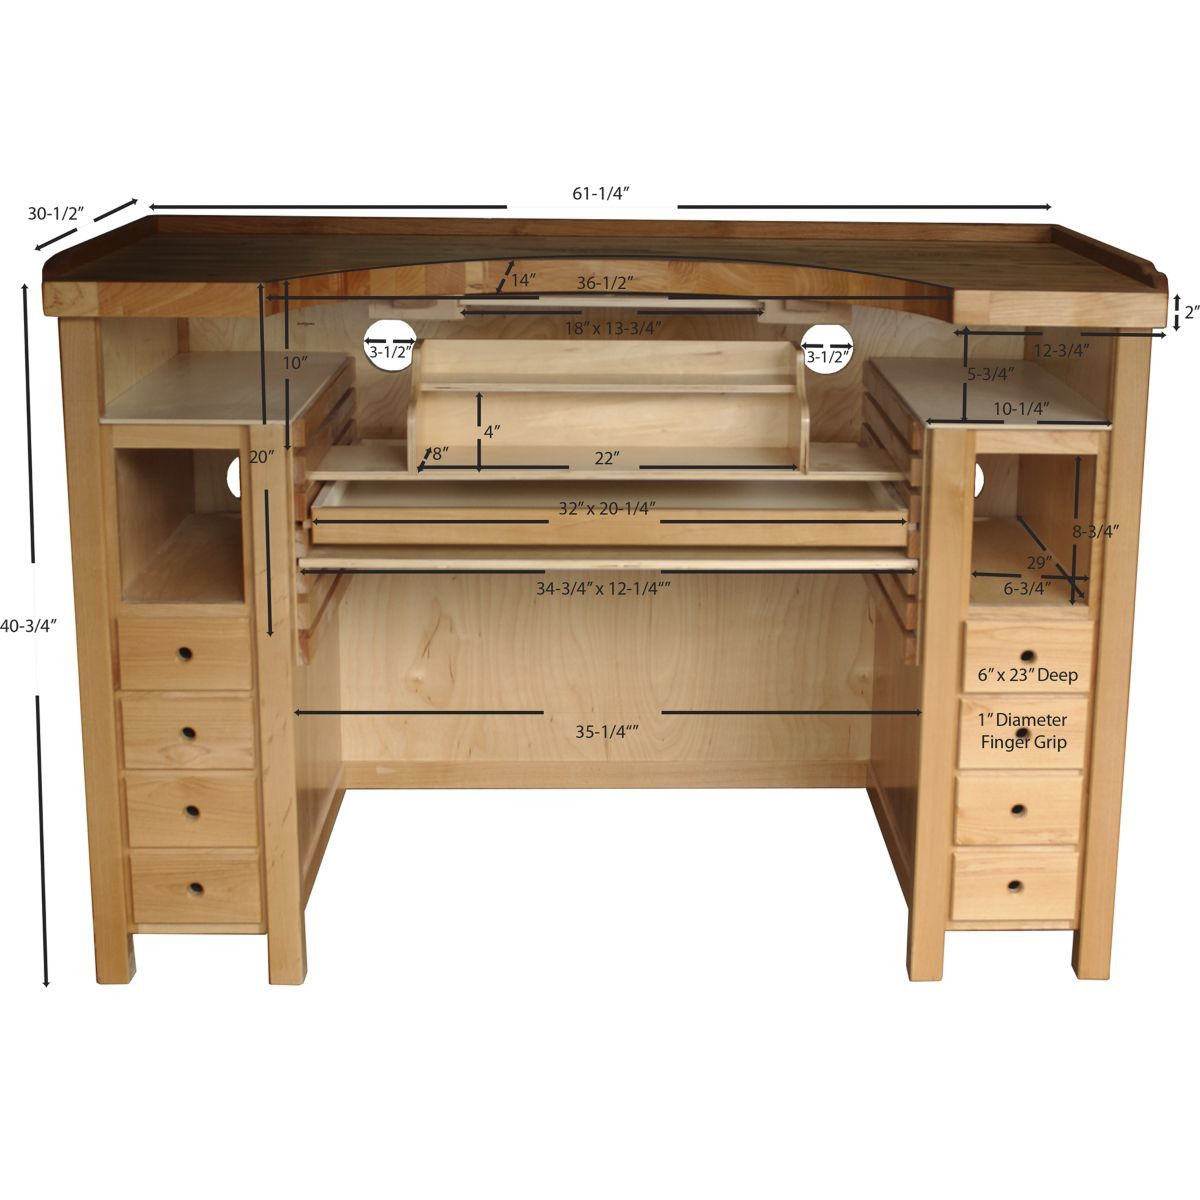 Swell Maple Otto Frei Stone Setters Jewelers Workbench In 2019 Cjindustries Chair Design For Home Cjindustriesco